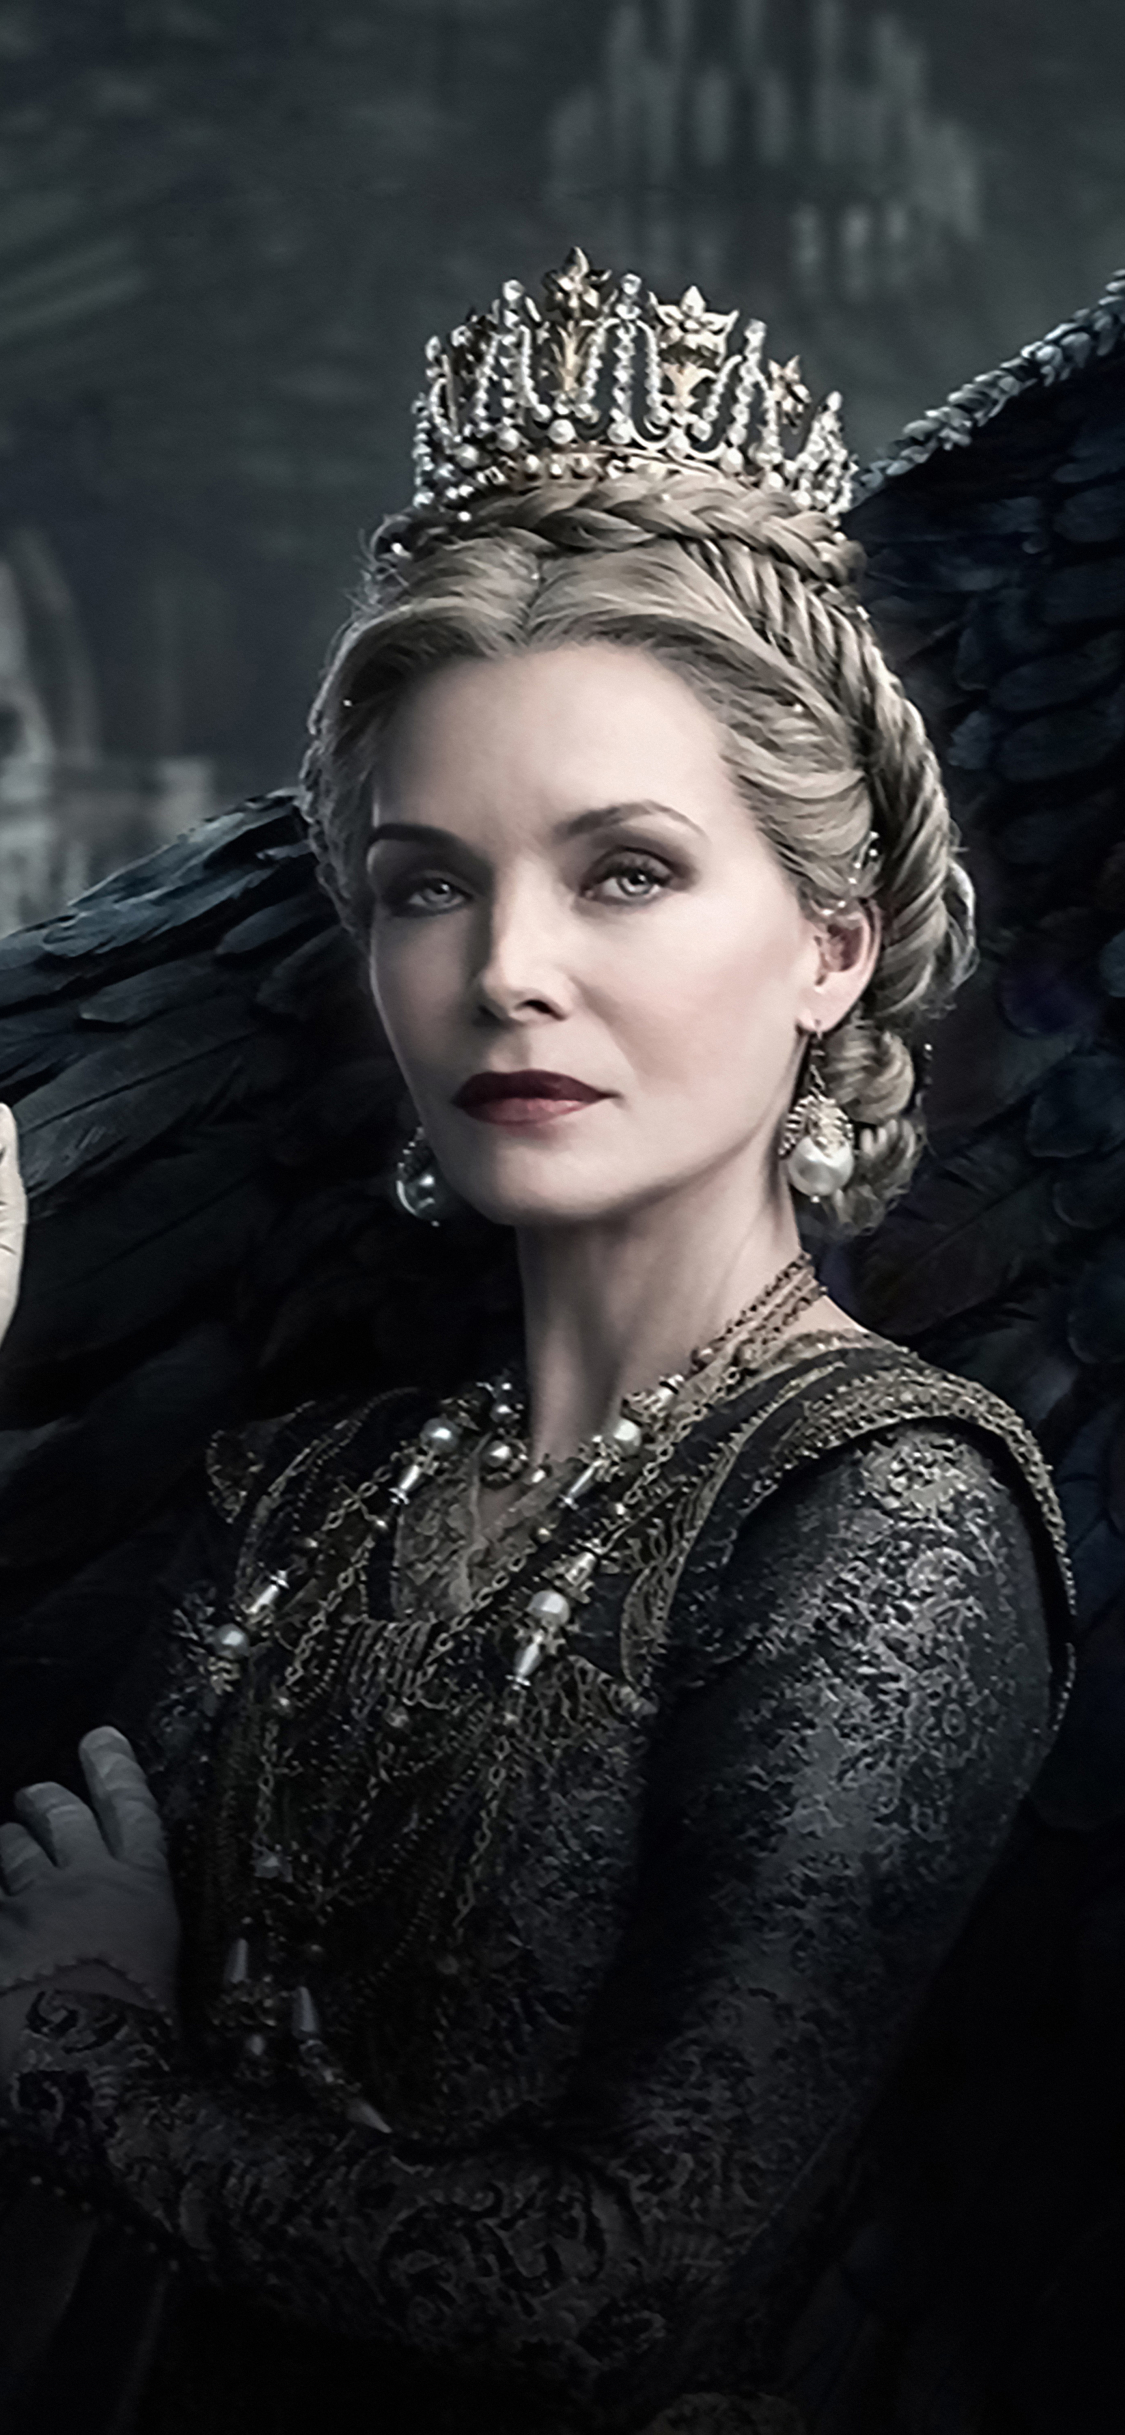 1125x2436 Michelle Pfeiffer In Maleficent Mistress Of Evil